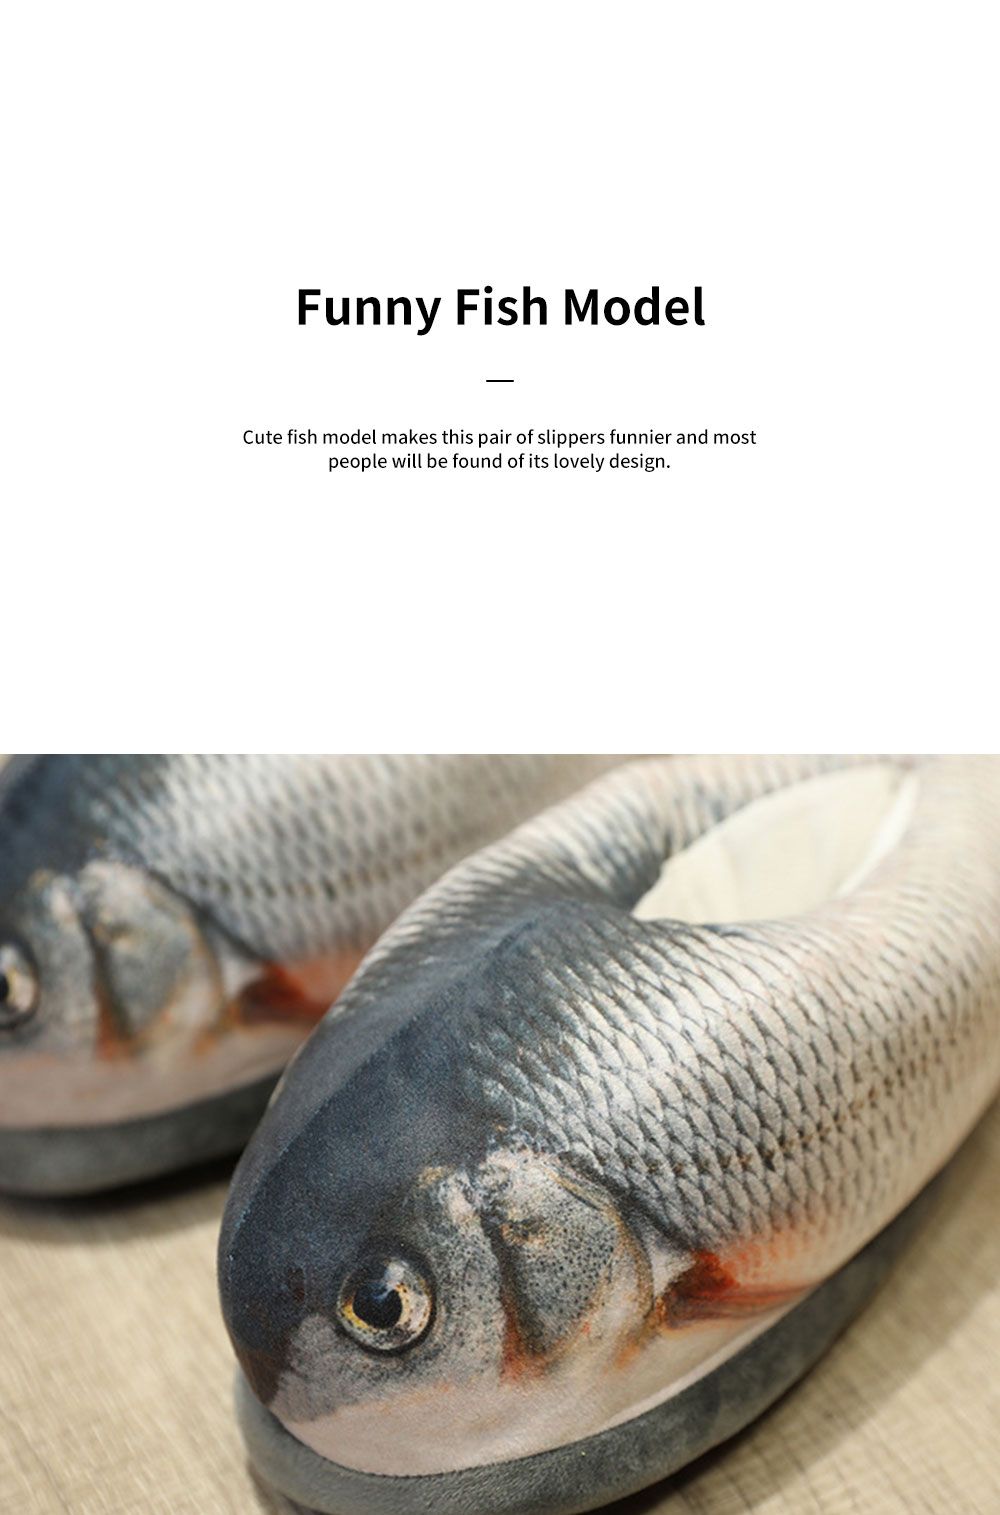 Creative Cute Funny Fish Model Cotton Indoor Slippers Pantofle Winter Autumn Warm Household Shoes 3